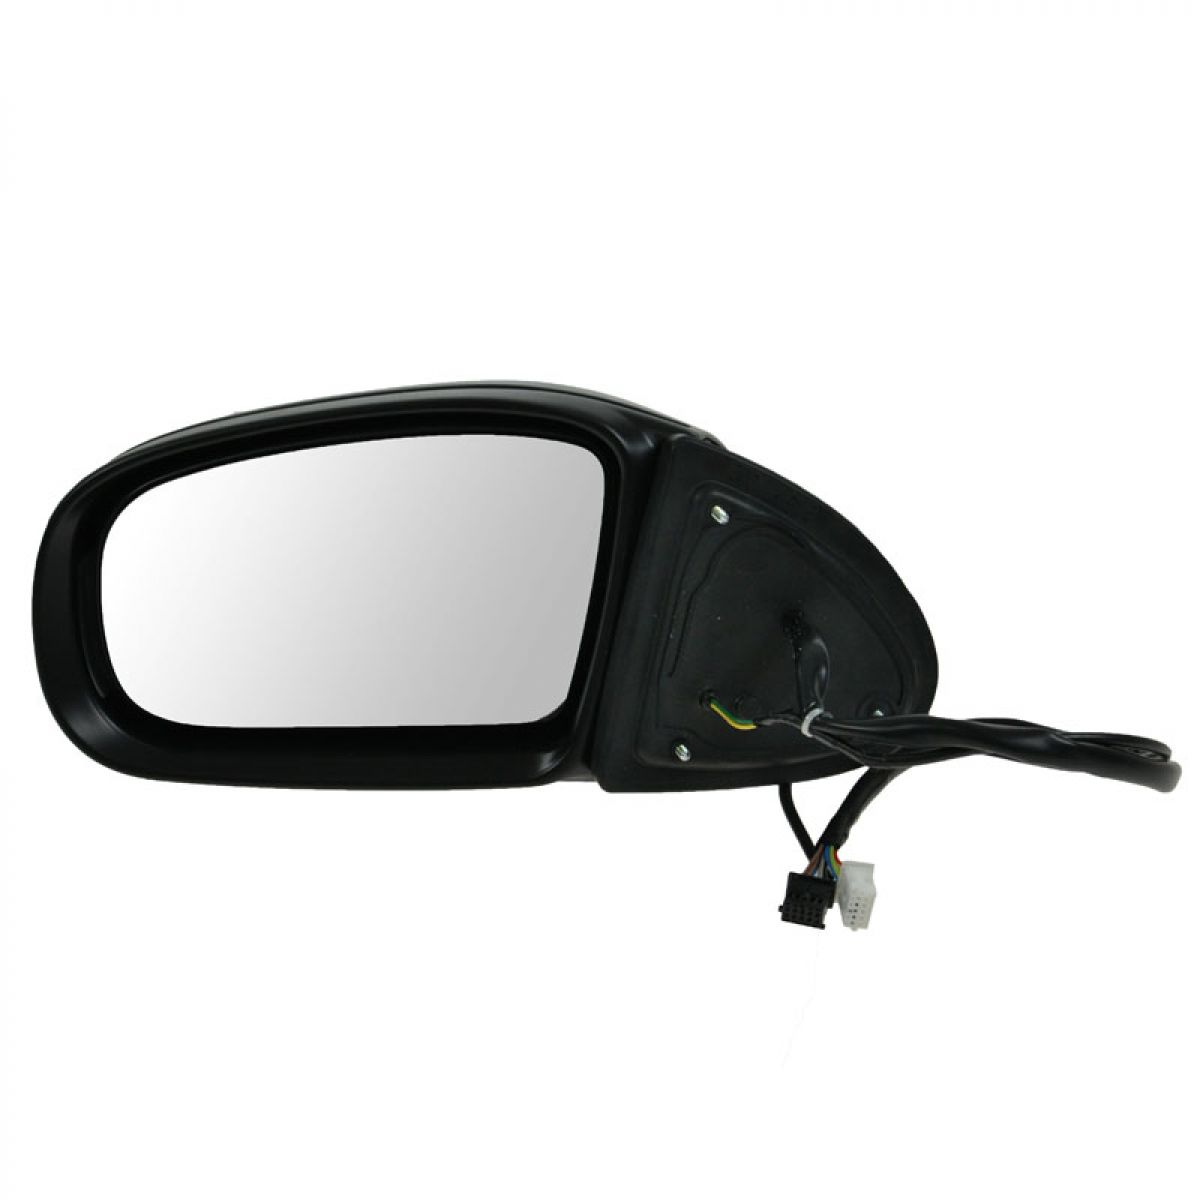 Power folding heated side view mirror w turn signal driver for Mercedes benz side mirror turn signal